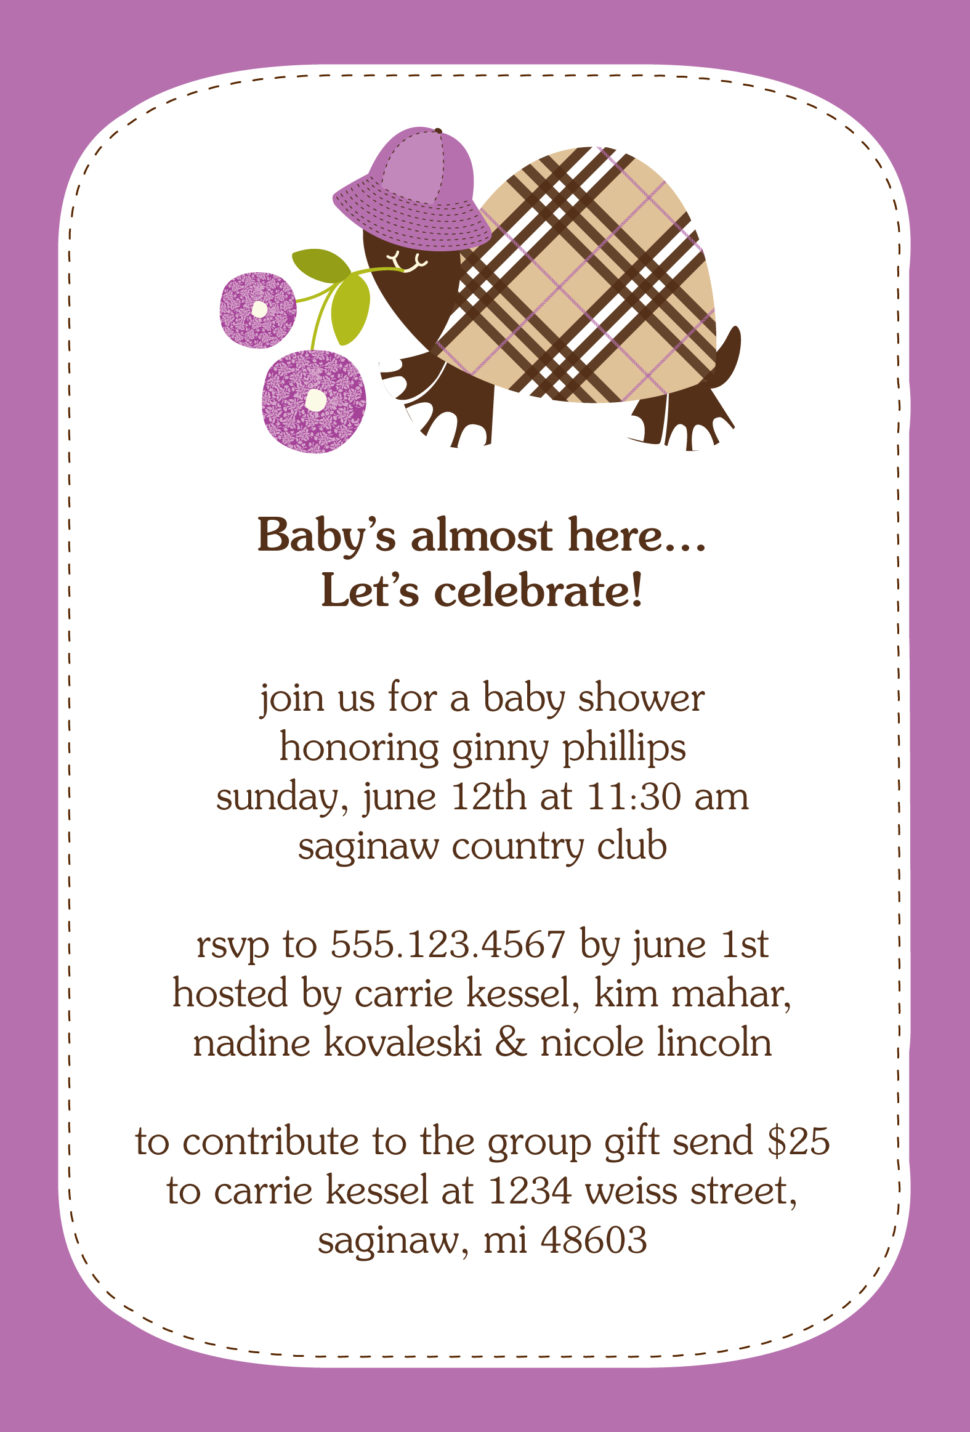 Medium Size of Baby Shower:delightful Baby Shower Invitation Wording Picture Designs Recuerdos De Baby Shower Baby Favors Baby Shower Snapchat Filter Baby Shower Adalah